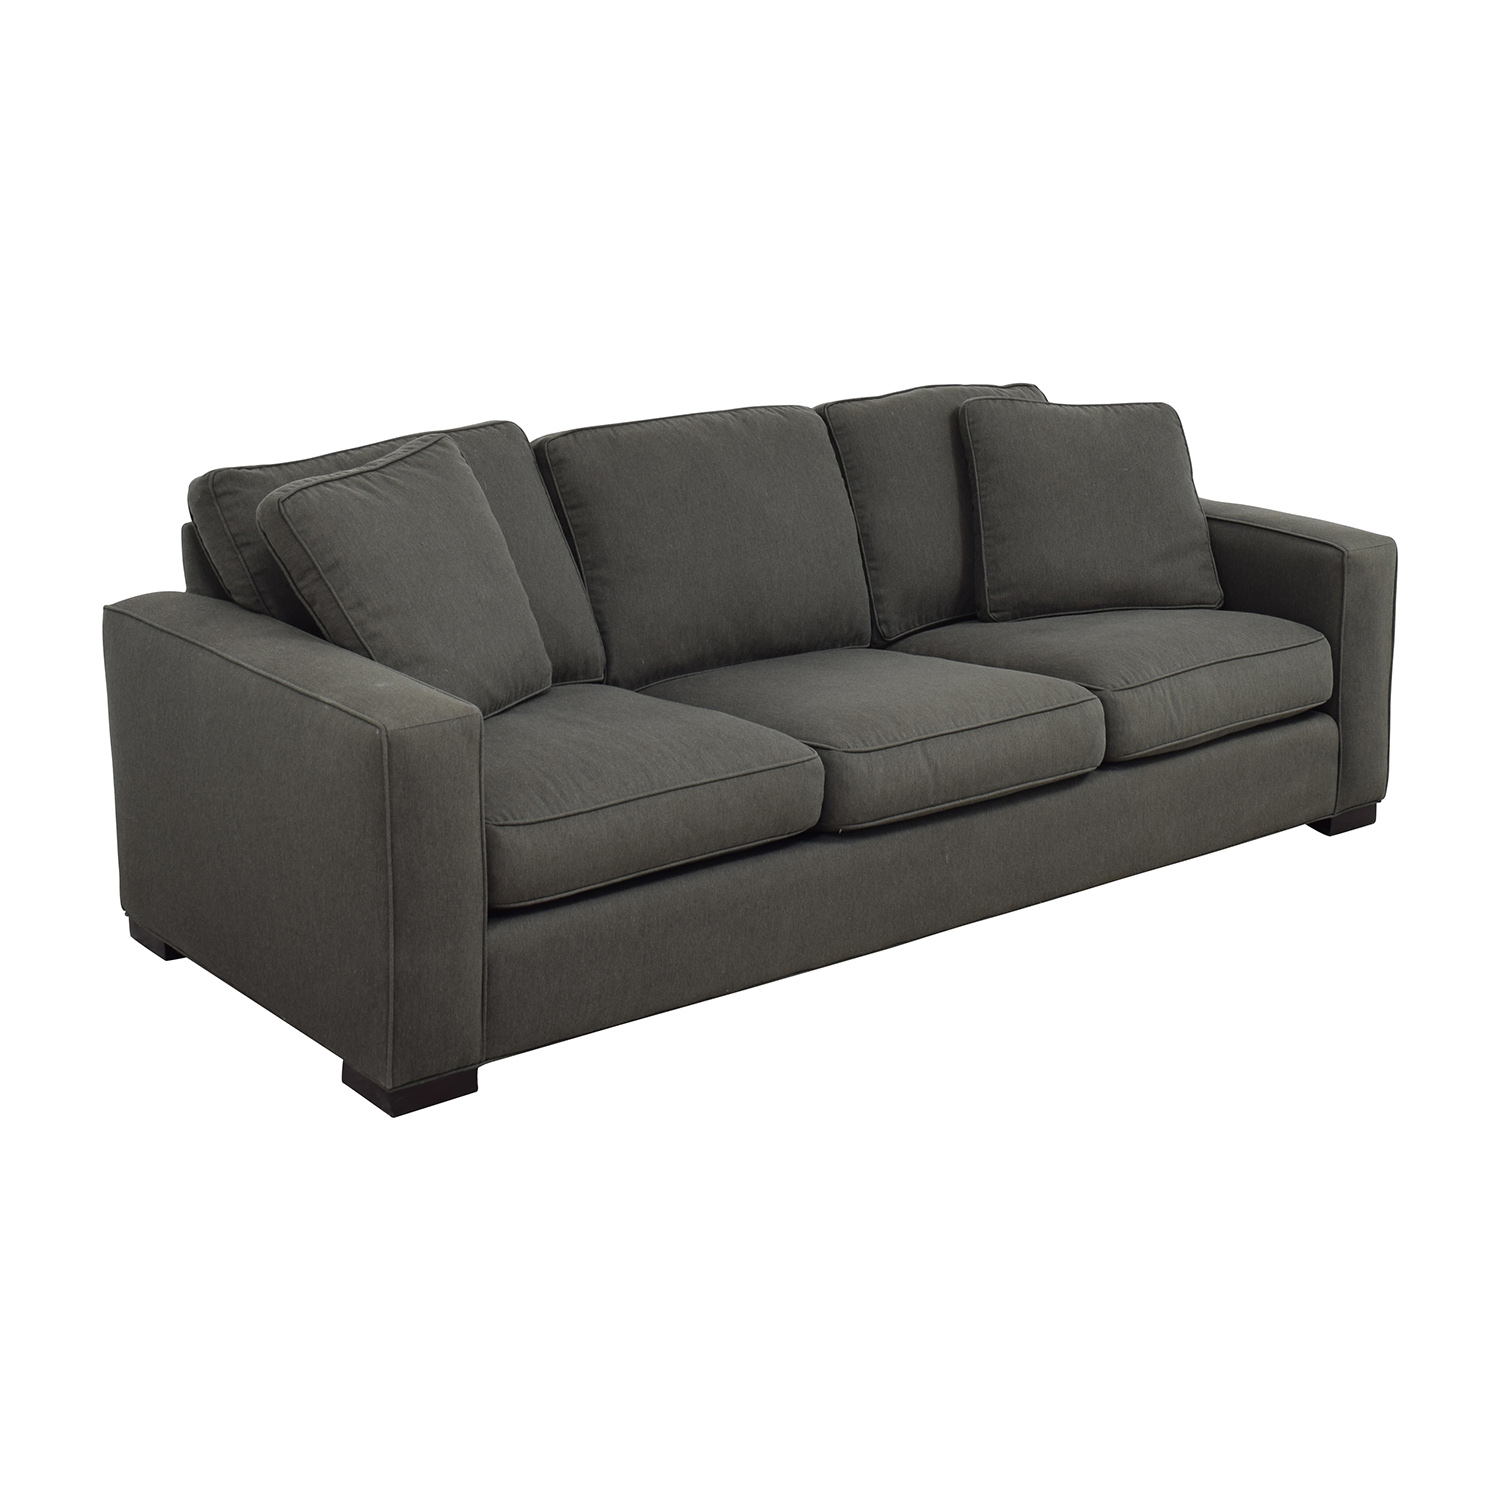 room and board metro sleeper sofa microfiber sectional sofas with recliners 49 off in charcoal